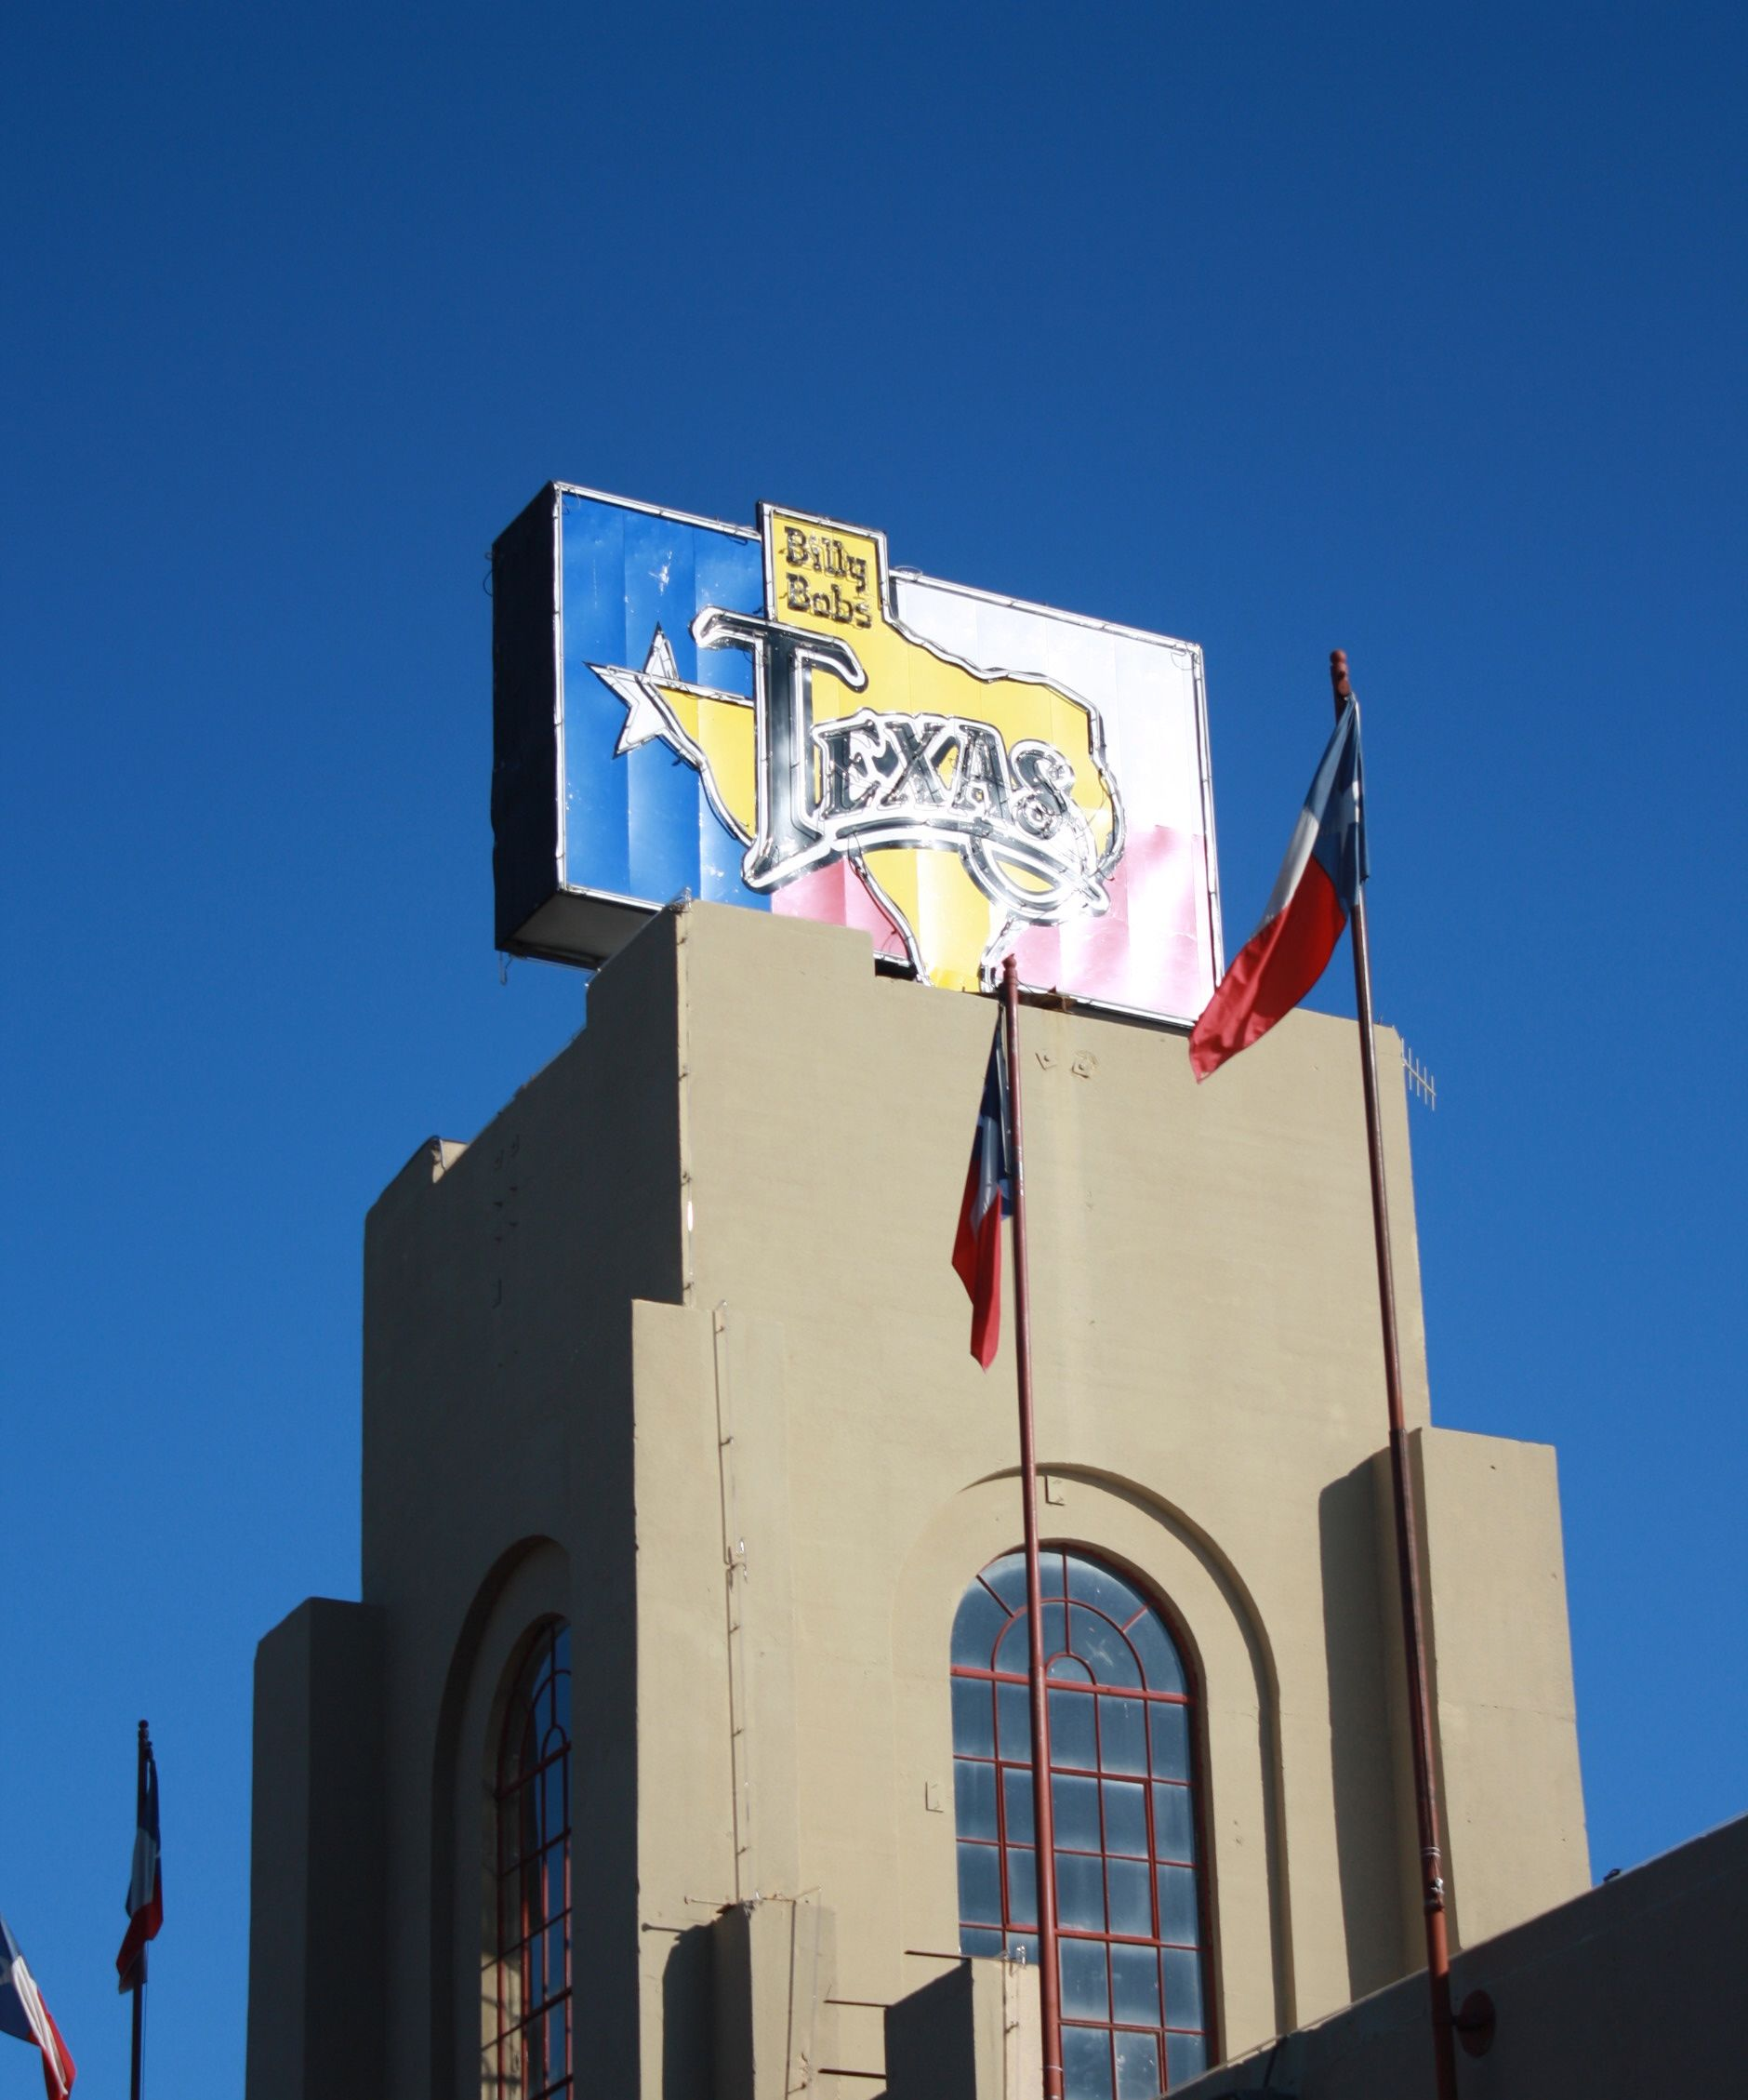 Cover The Billy Bob S Texas Sign By Day 2520 Rodeo Plaza